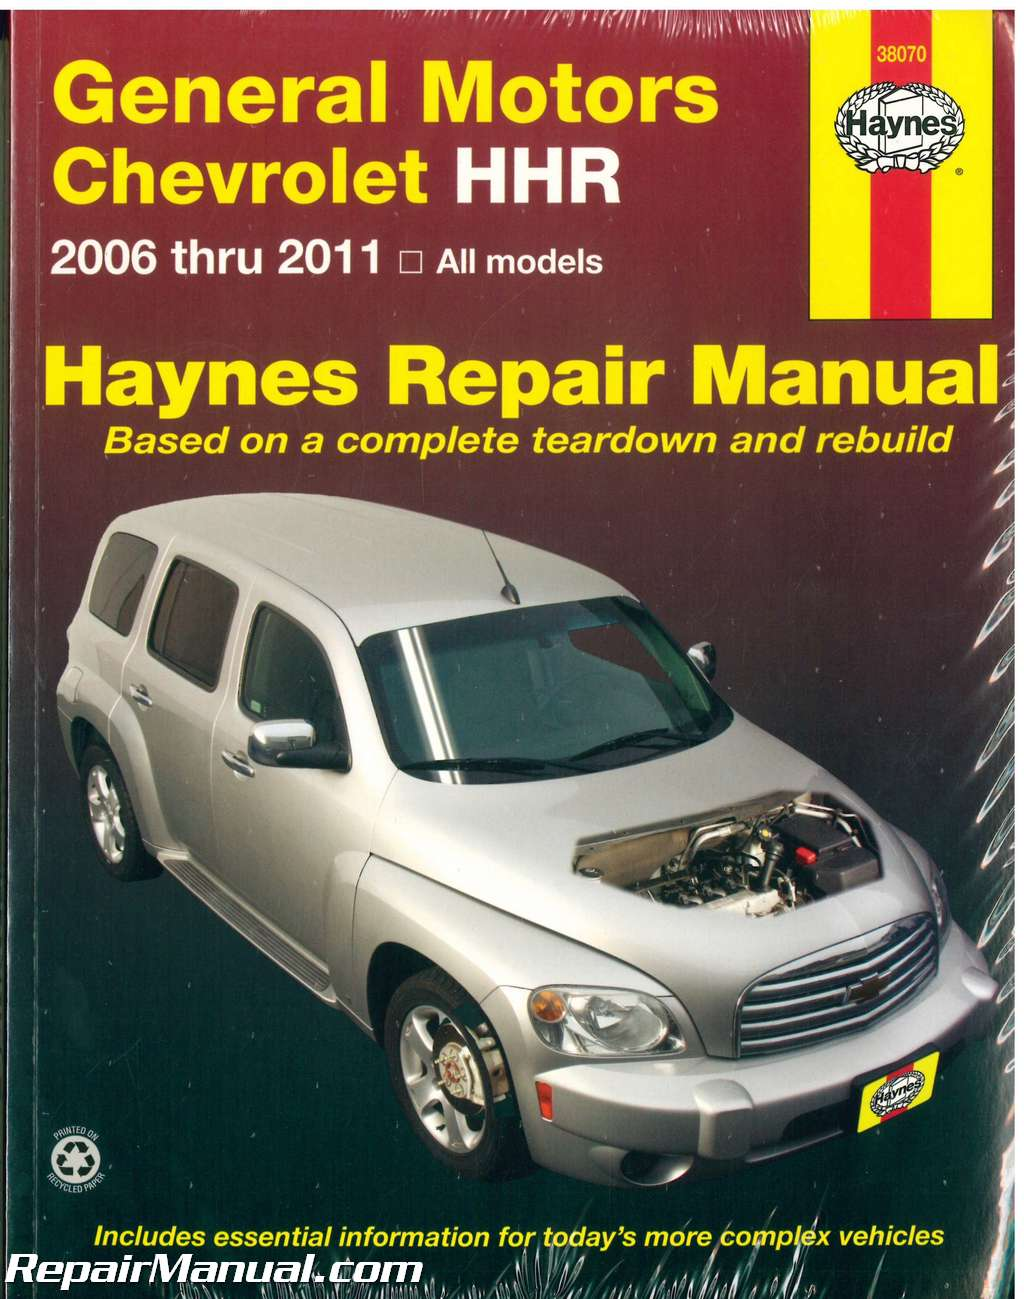 Chevrolet Hhr 2006 2011 Repair Manual By Haynes